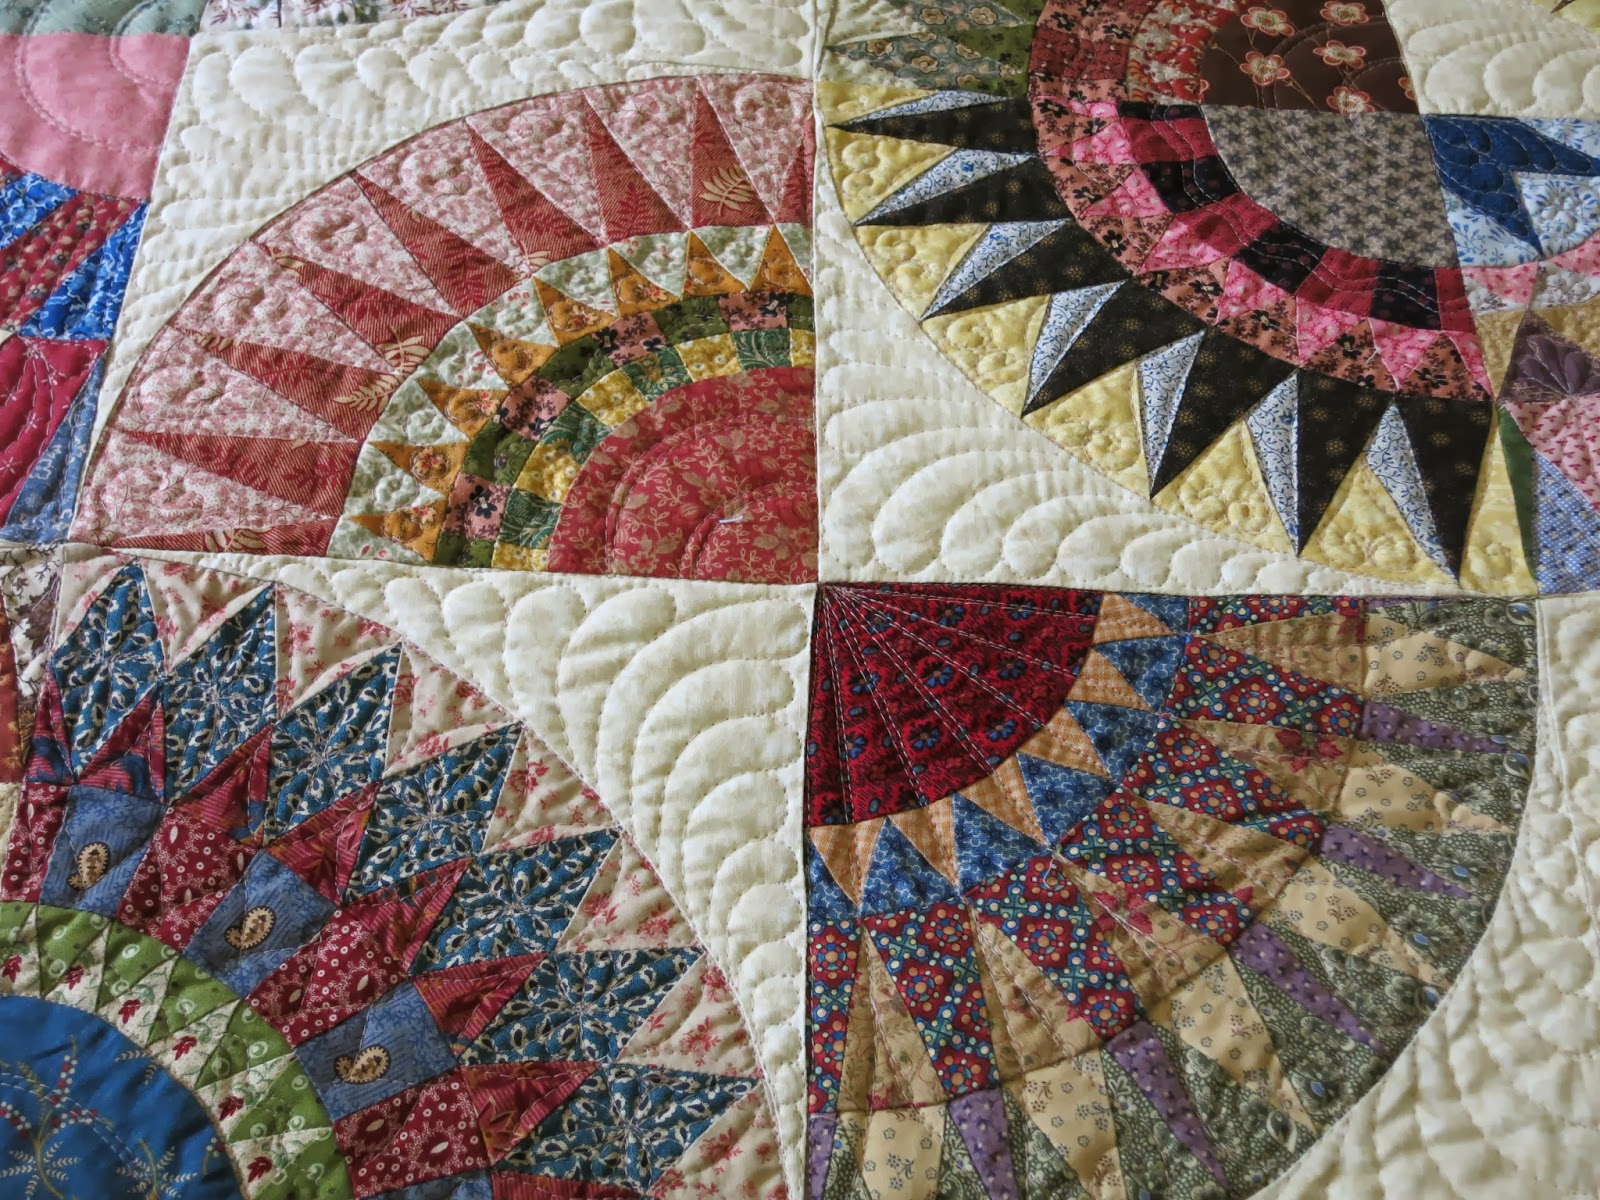 Katrina S Quilting Ann Mulvany Beautiful Quilt